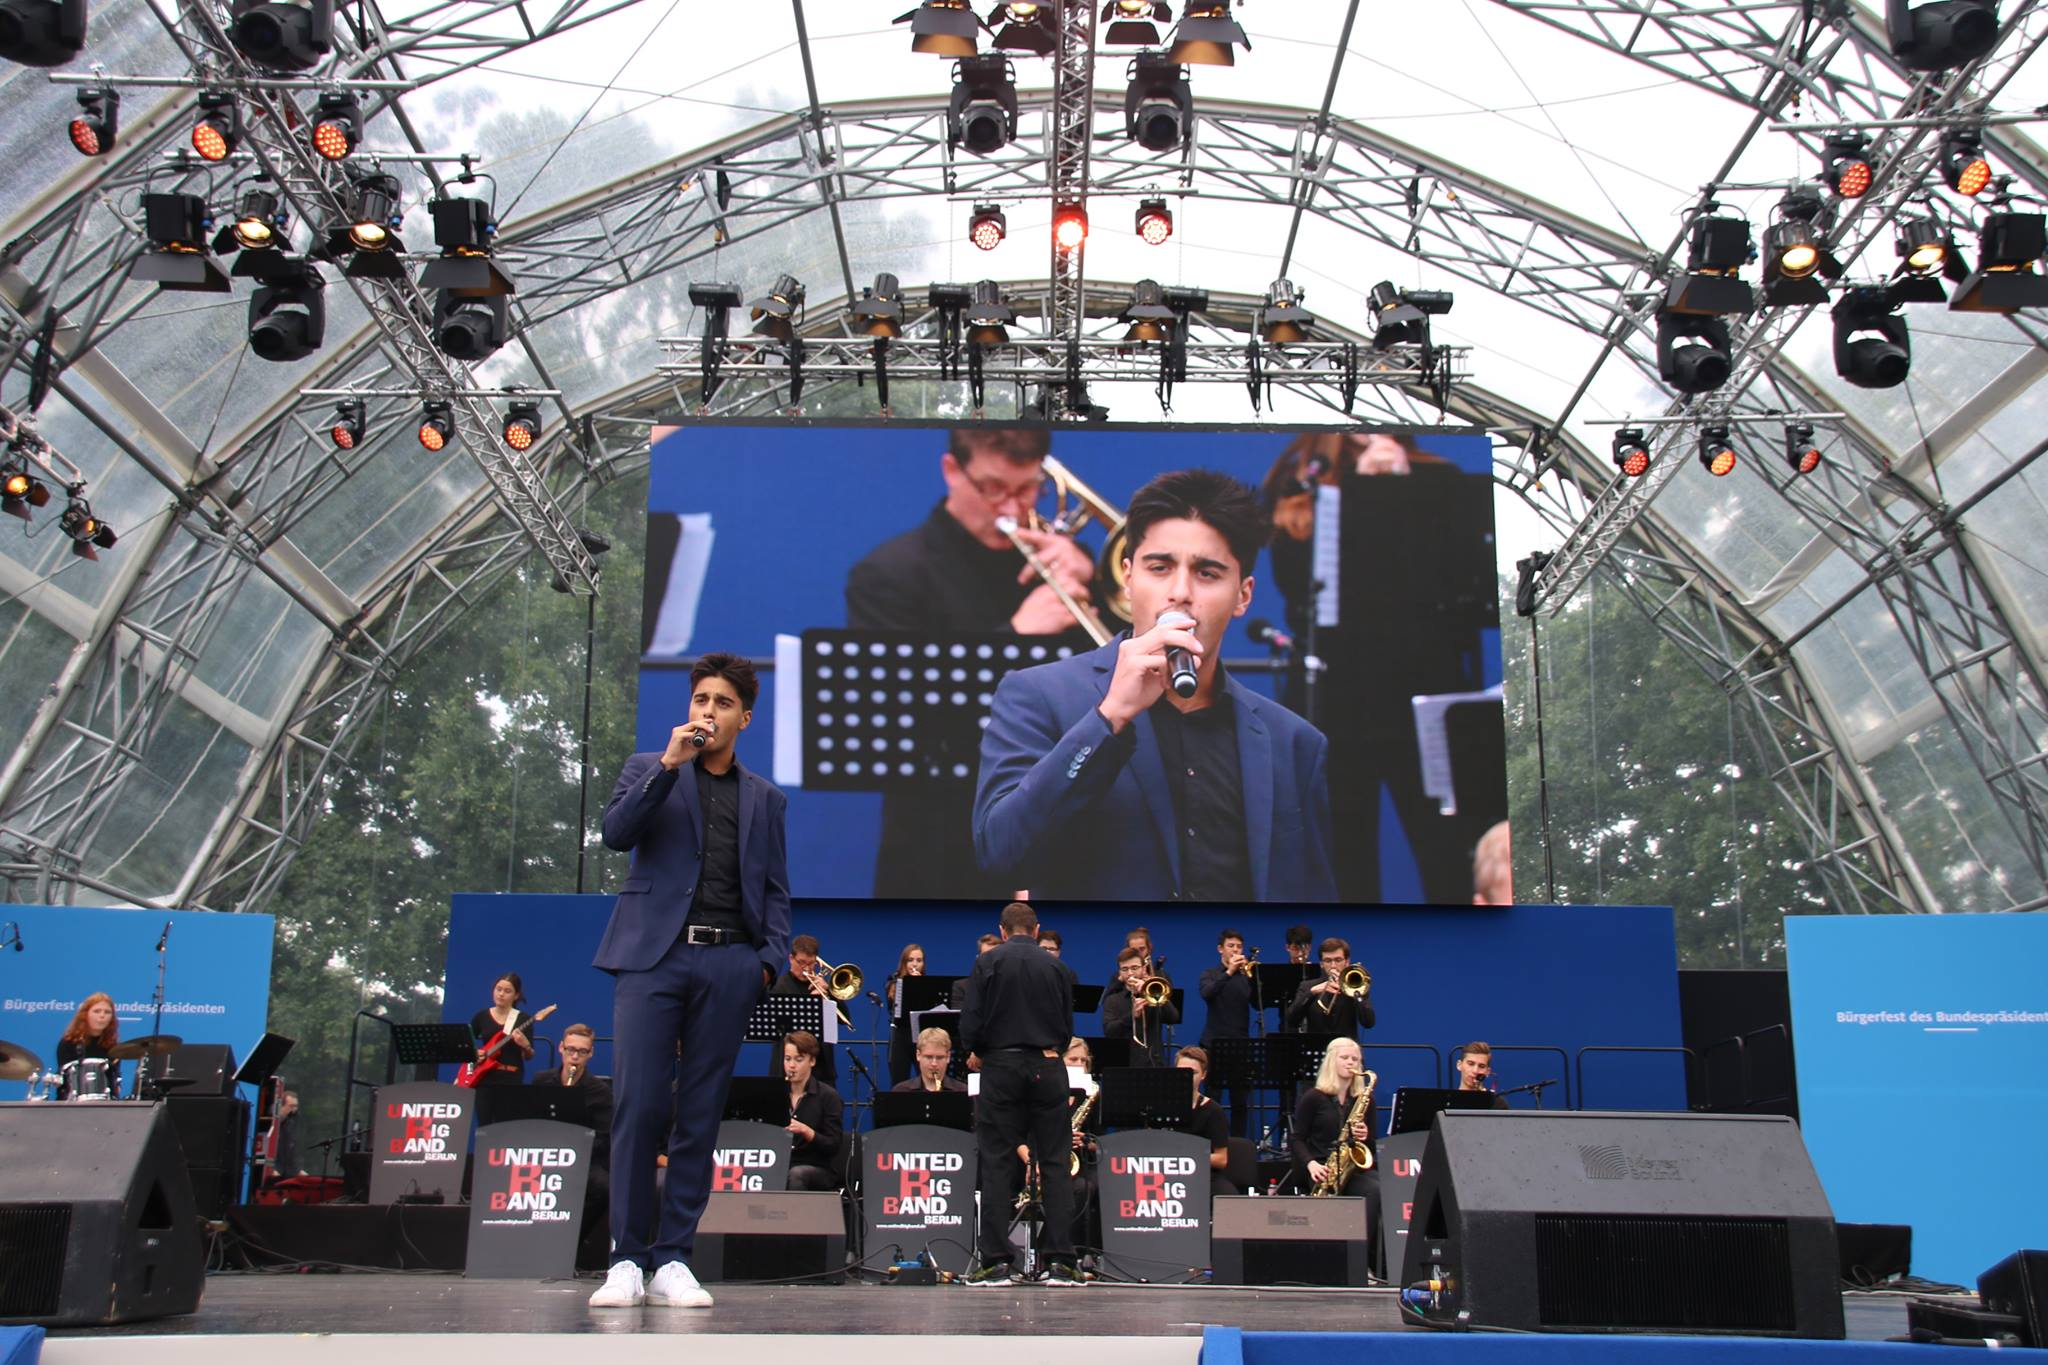 Atrin Madani performing jazz standards at a concert, in his typical blue suit. (Photo: Natalie Moeckel)